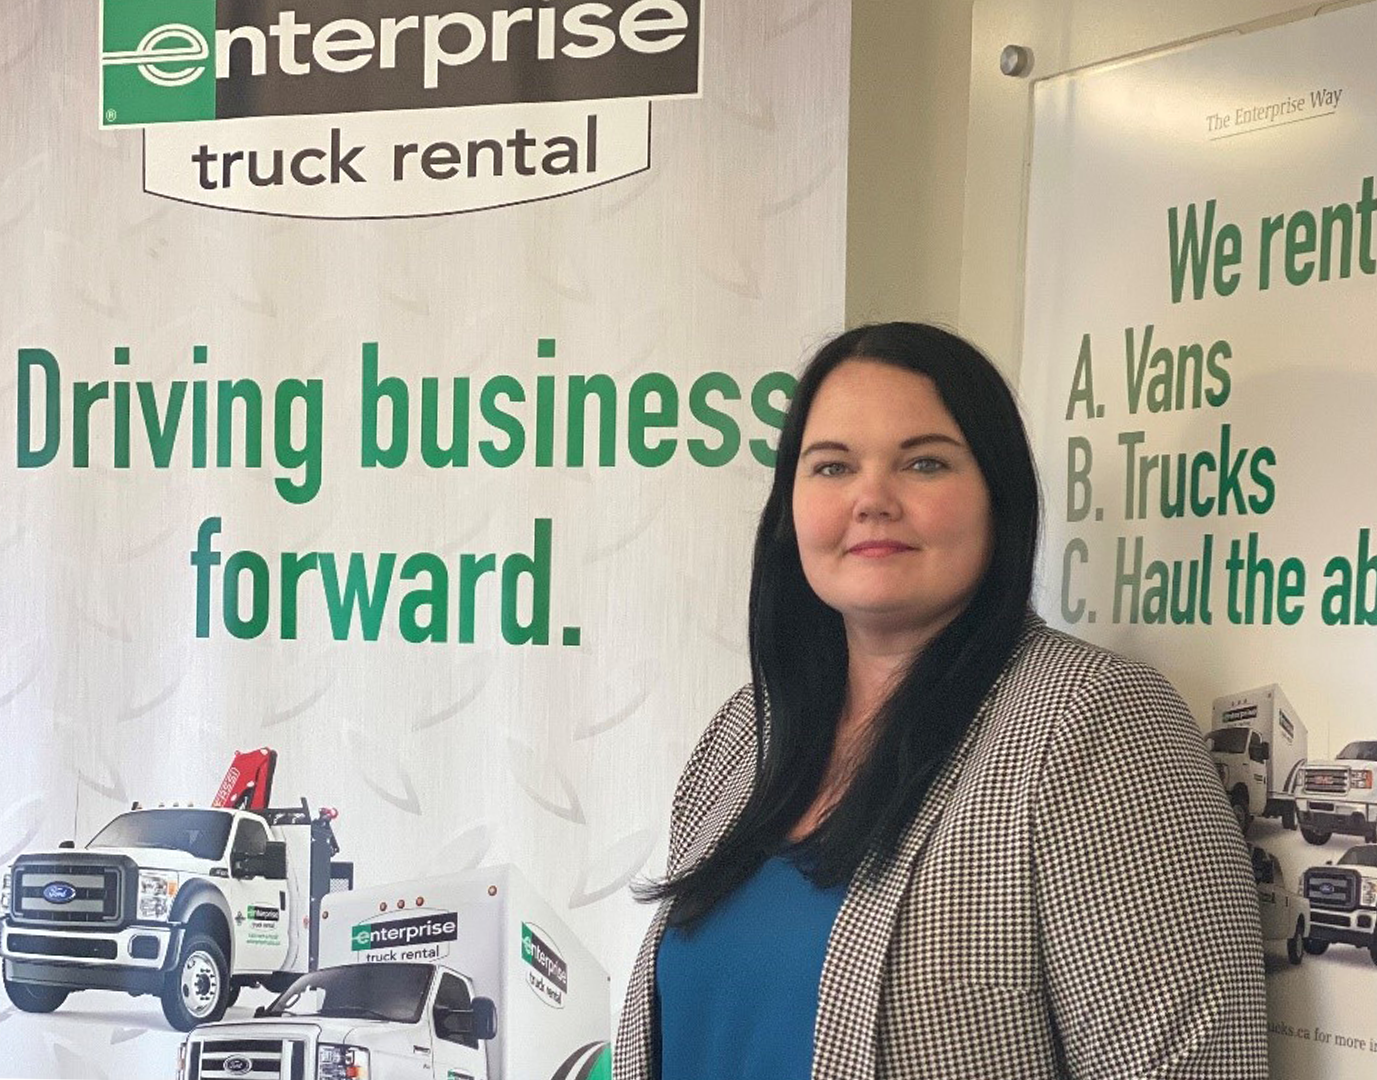 How this woman became the first female Group Truck Rental Manager in Canada